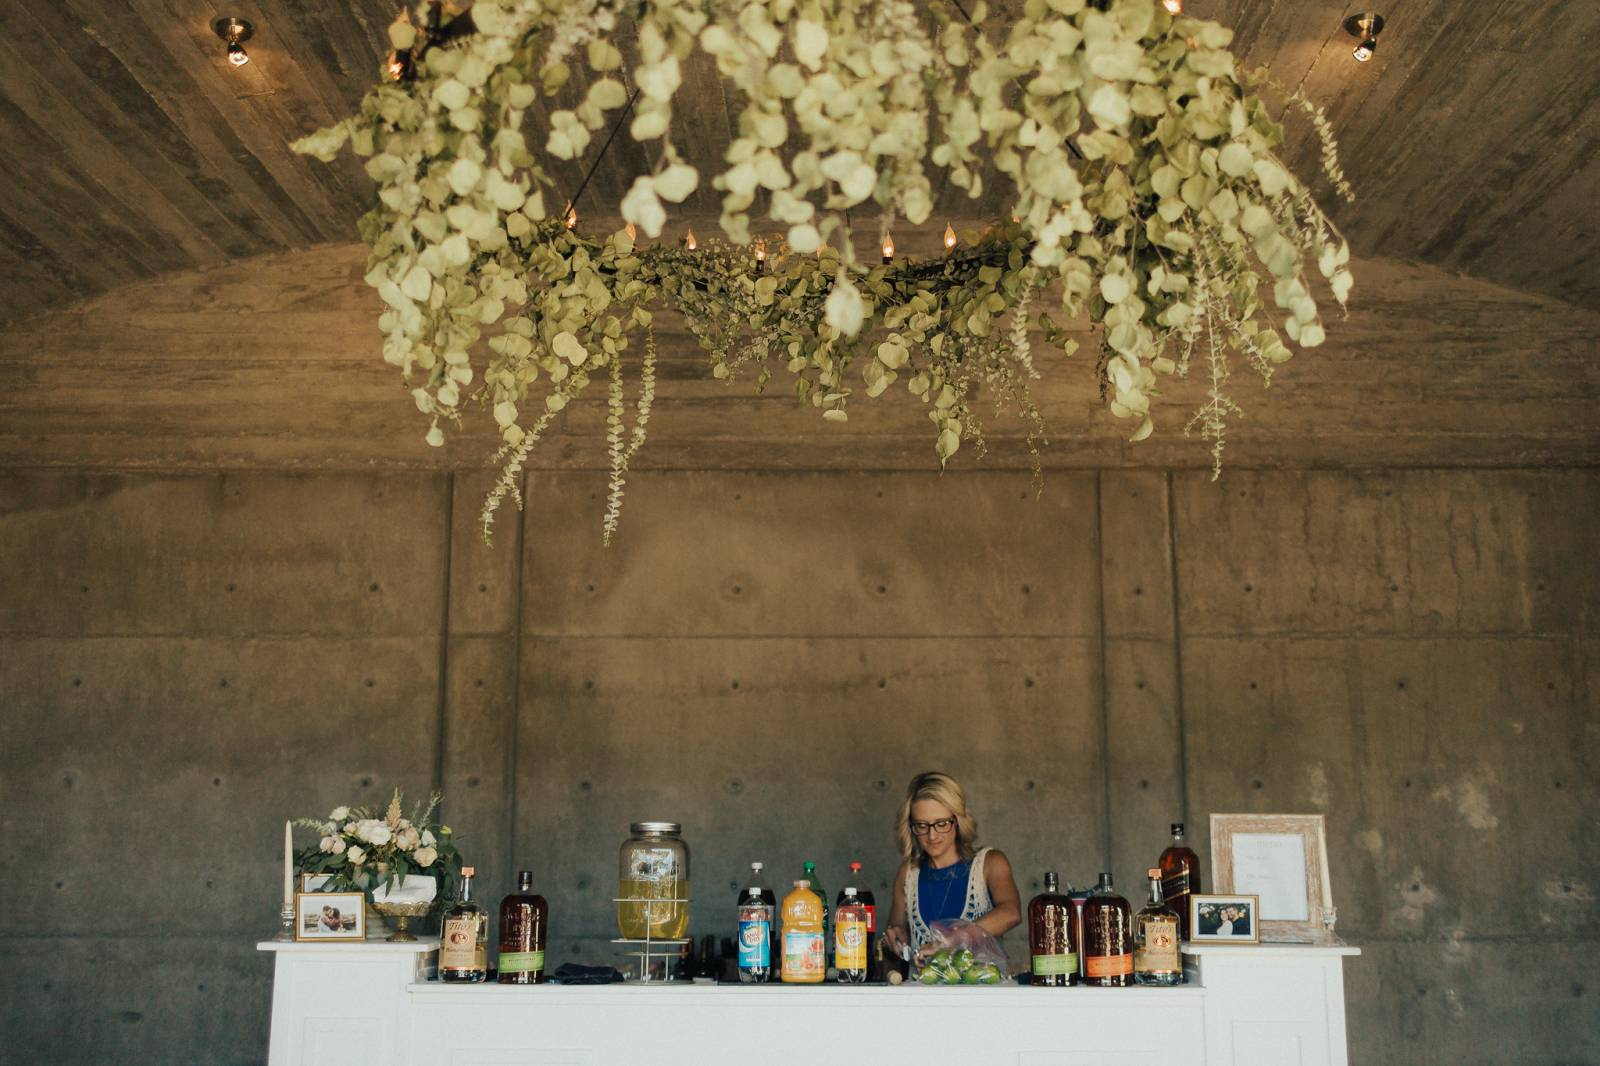 The Girl Preparing the Drinks For the Guests in the Wedding | The Wedding Standard